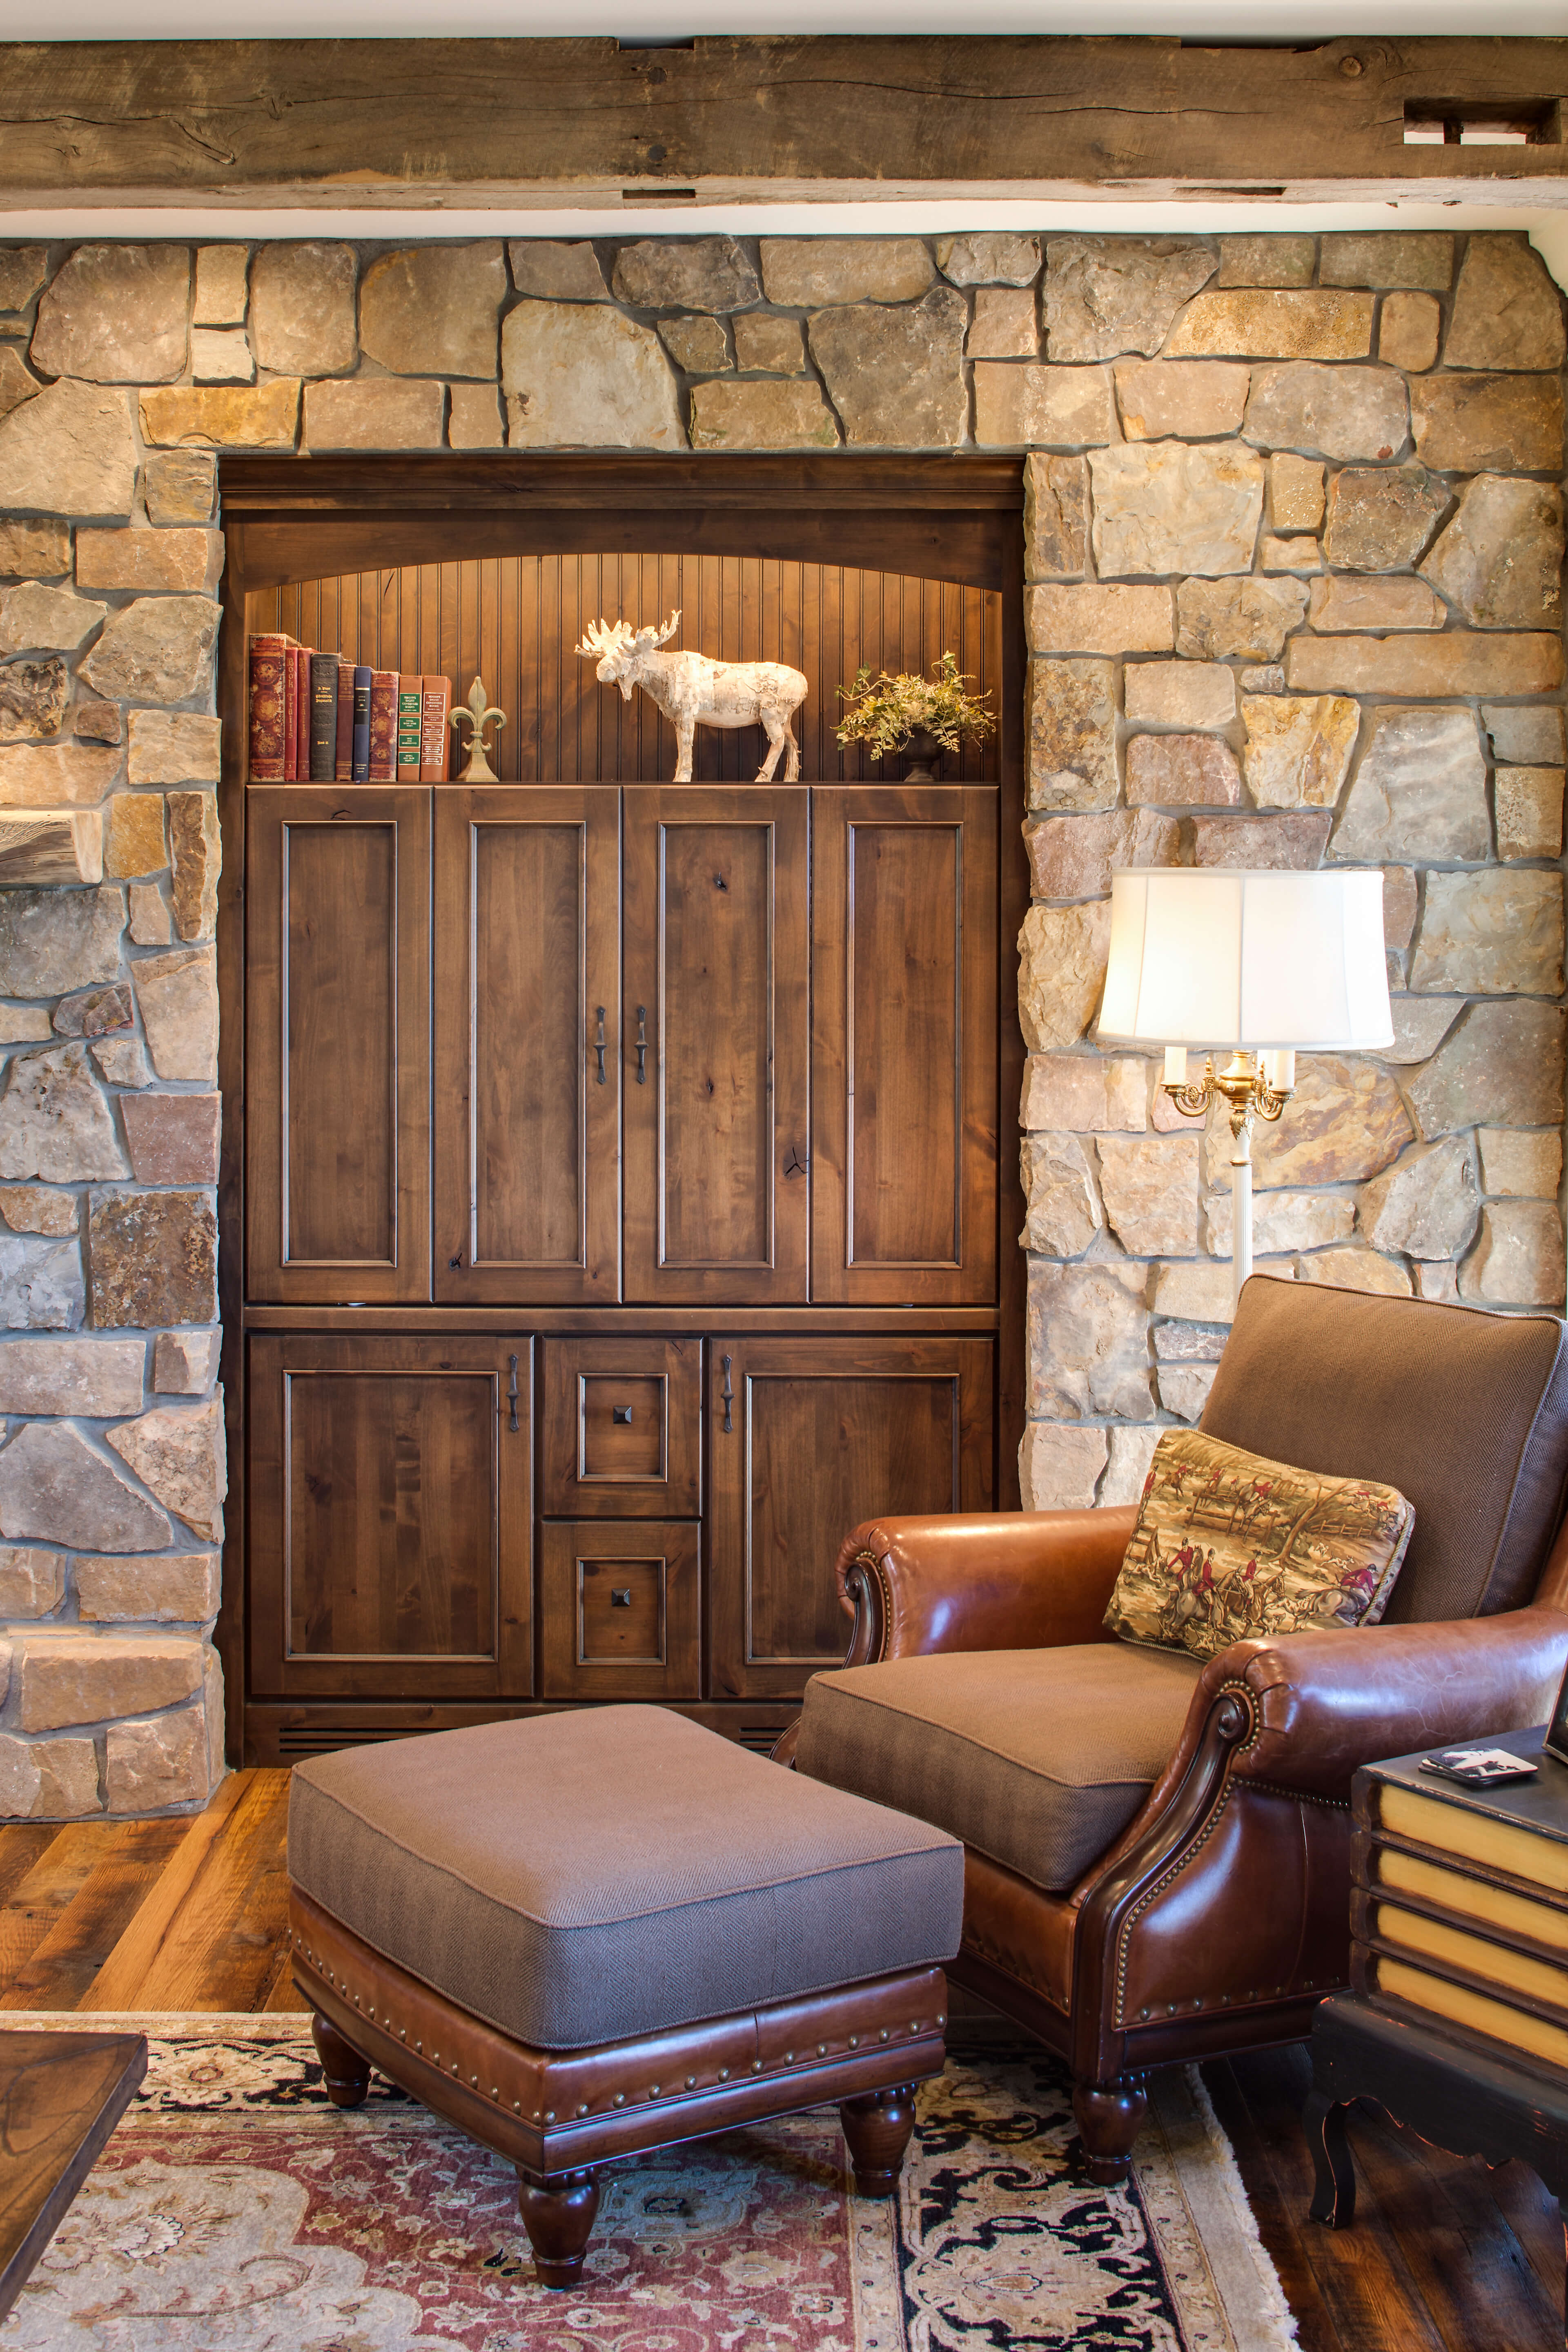 Rustic Knotty Alder Cabinets tucked into a stone wall for additional cabinet storage in a living room.